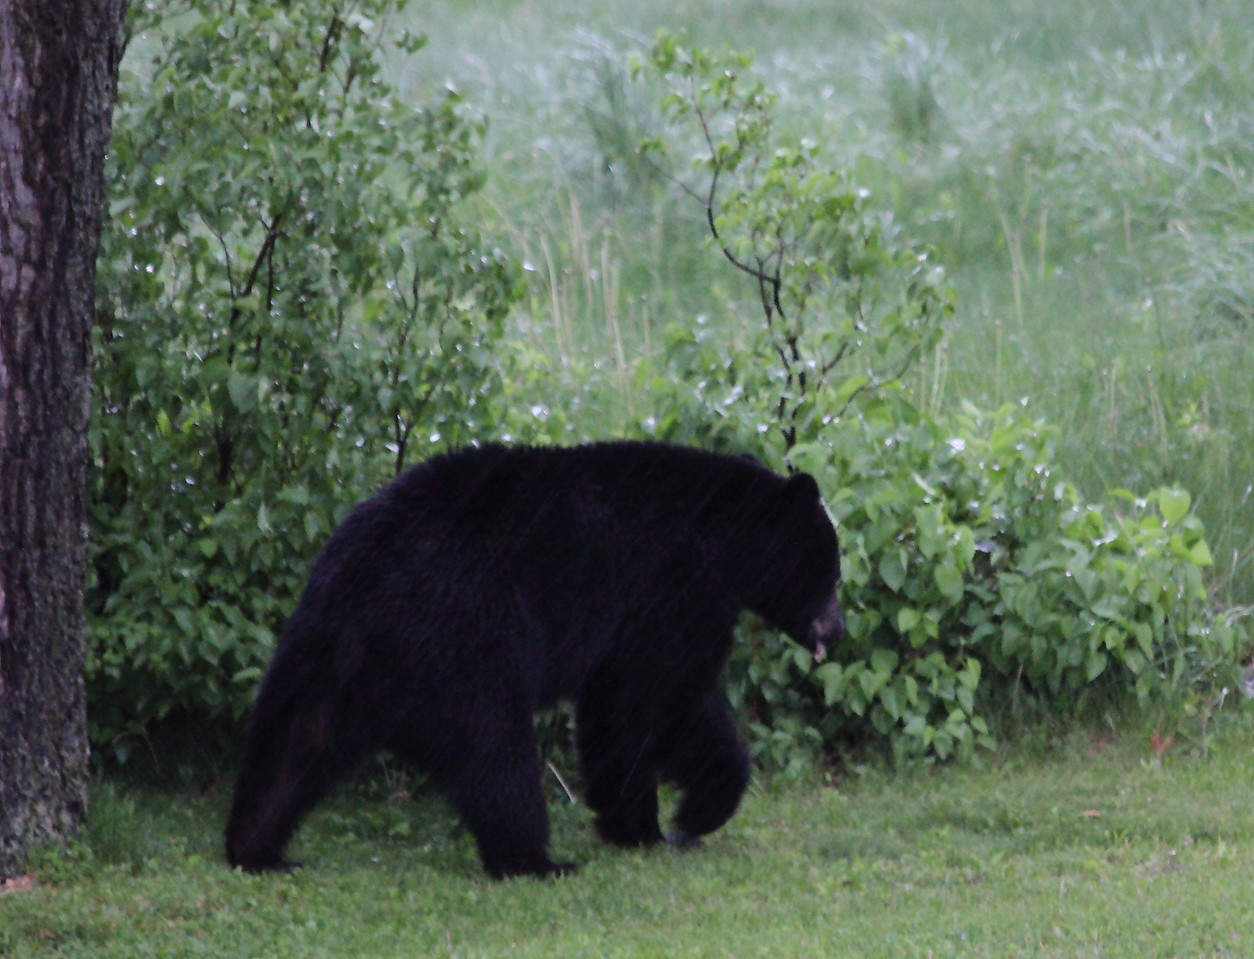 Black bear at the back edge of my yard after being chased away from the bird feeder he pulled down.